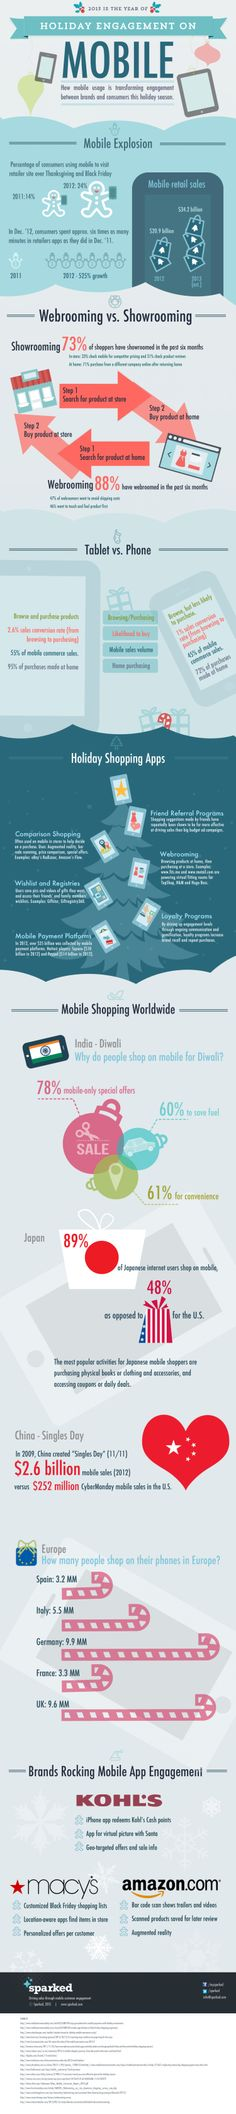 2013 is the Year of #Holiday Engagement on #Mobile #infografía By www.twitter.com/RiddsNetwork